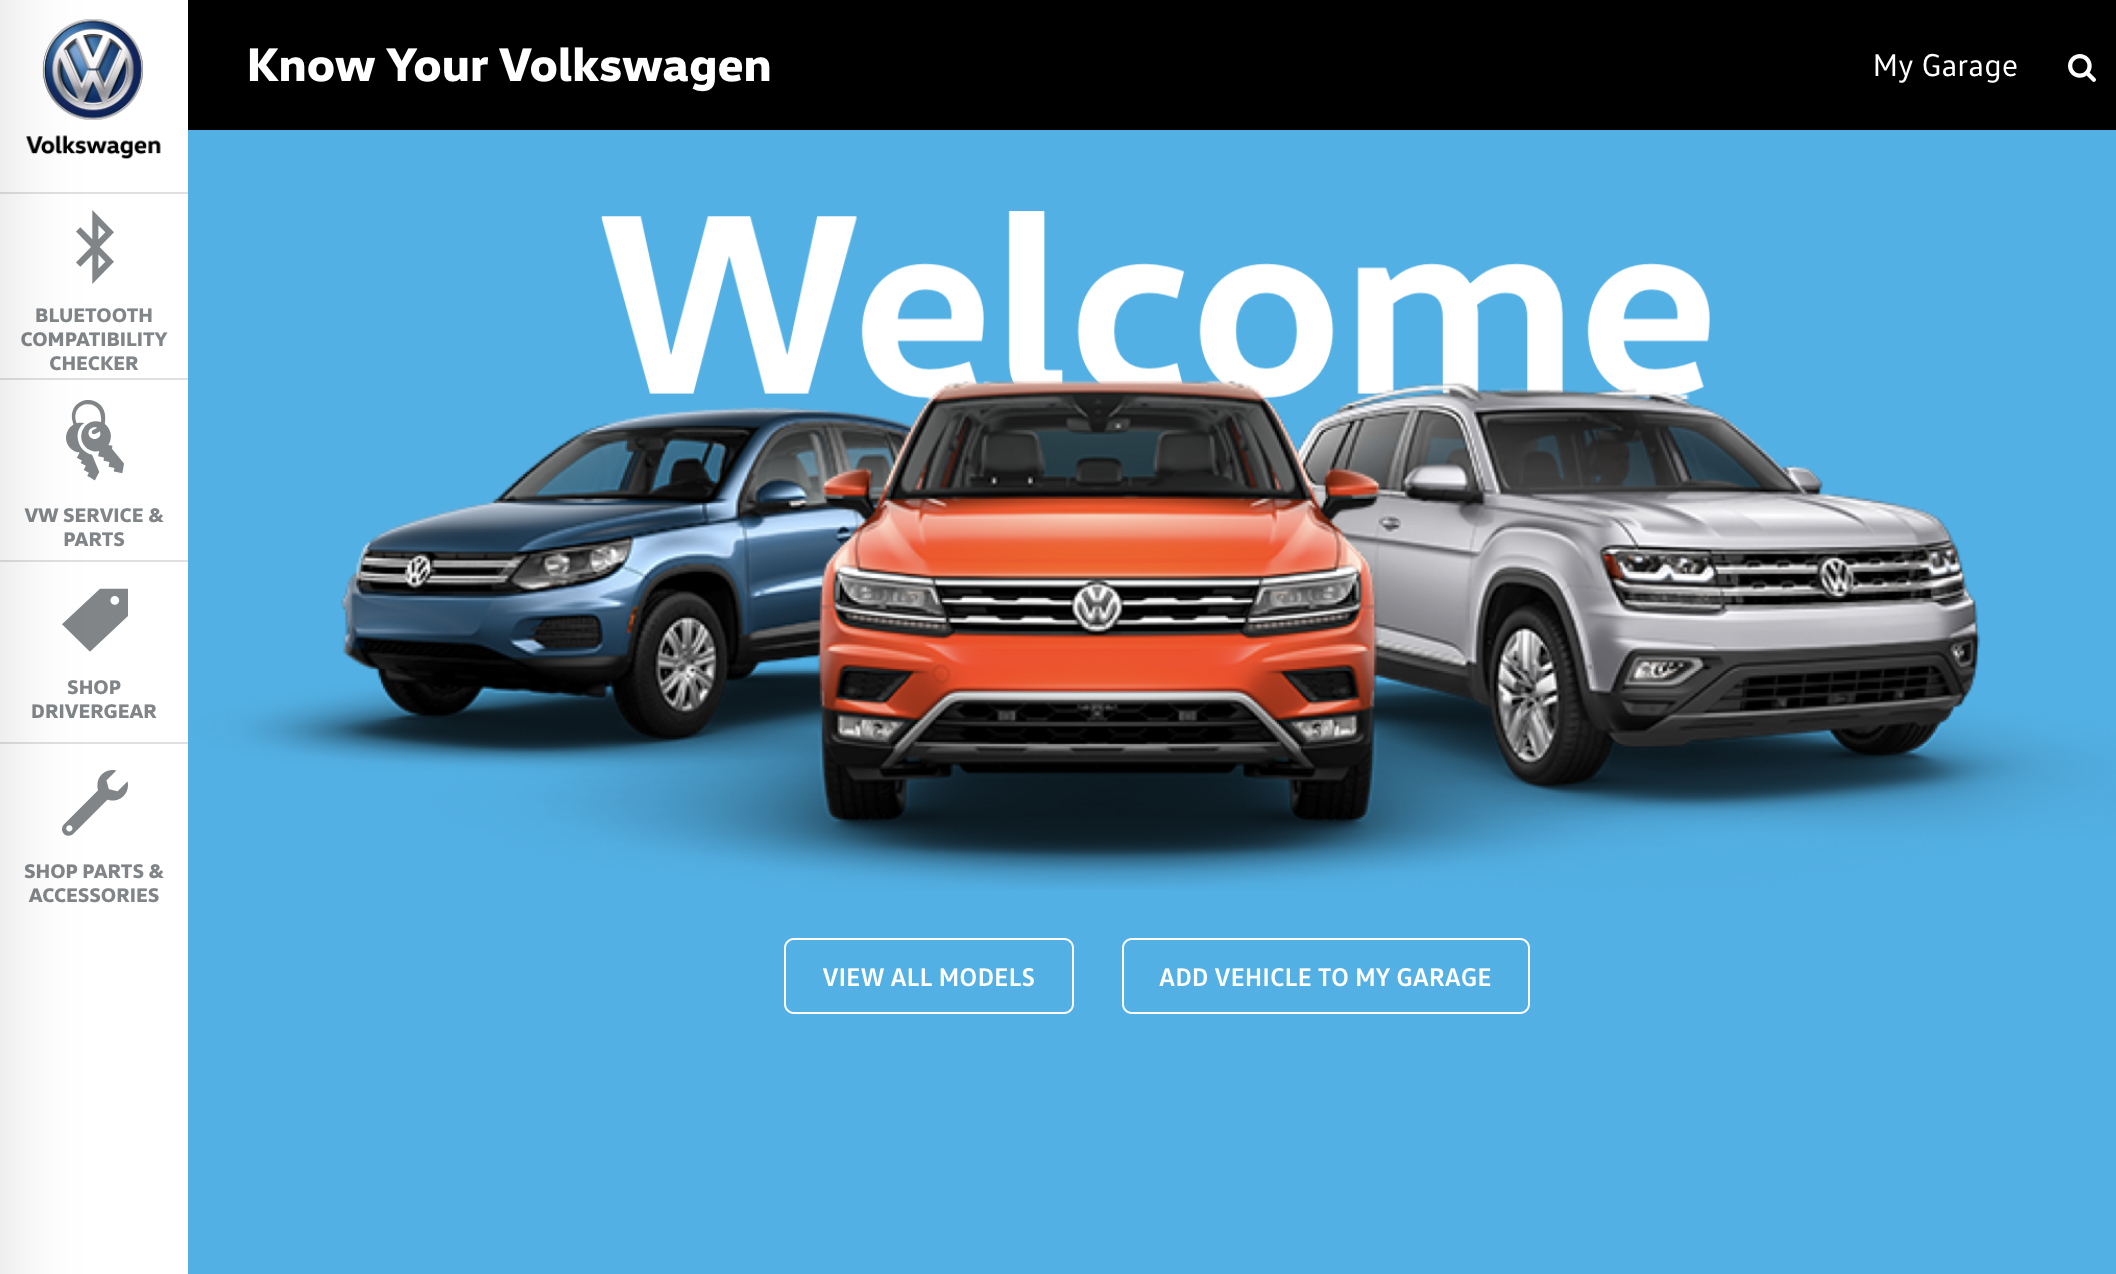 Know Your Vw | 2018 Atlas - 2018 Vw Atlas Owners Manual Pdf